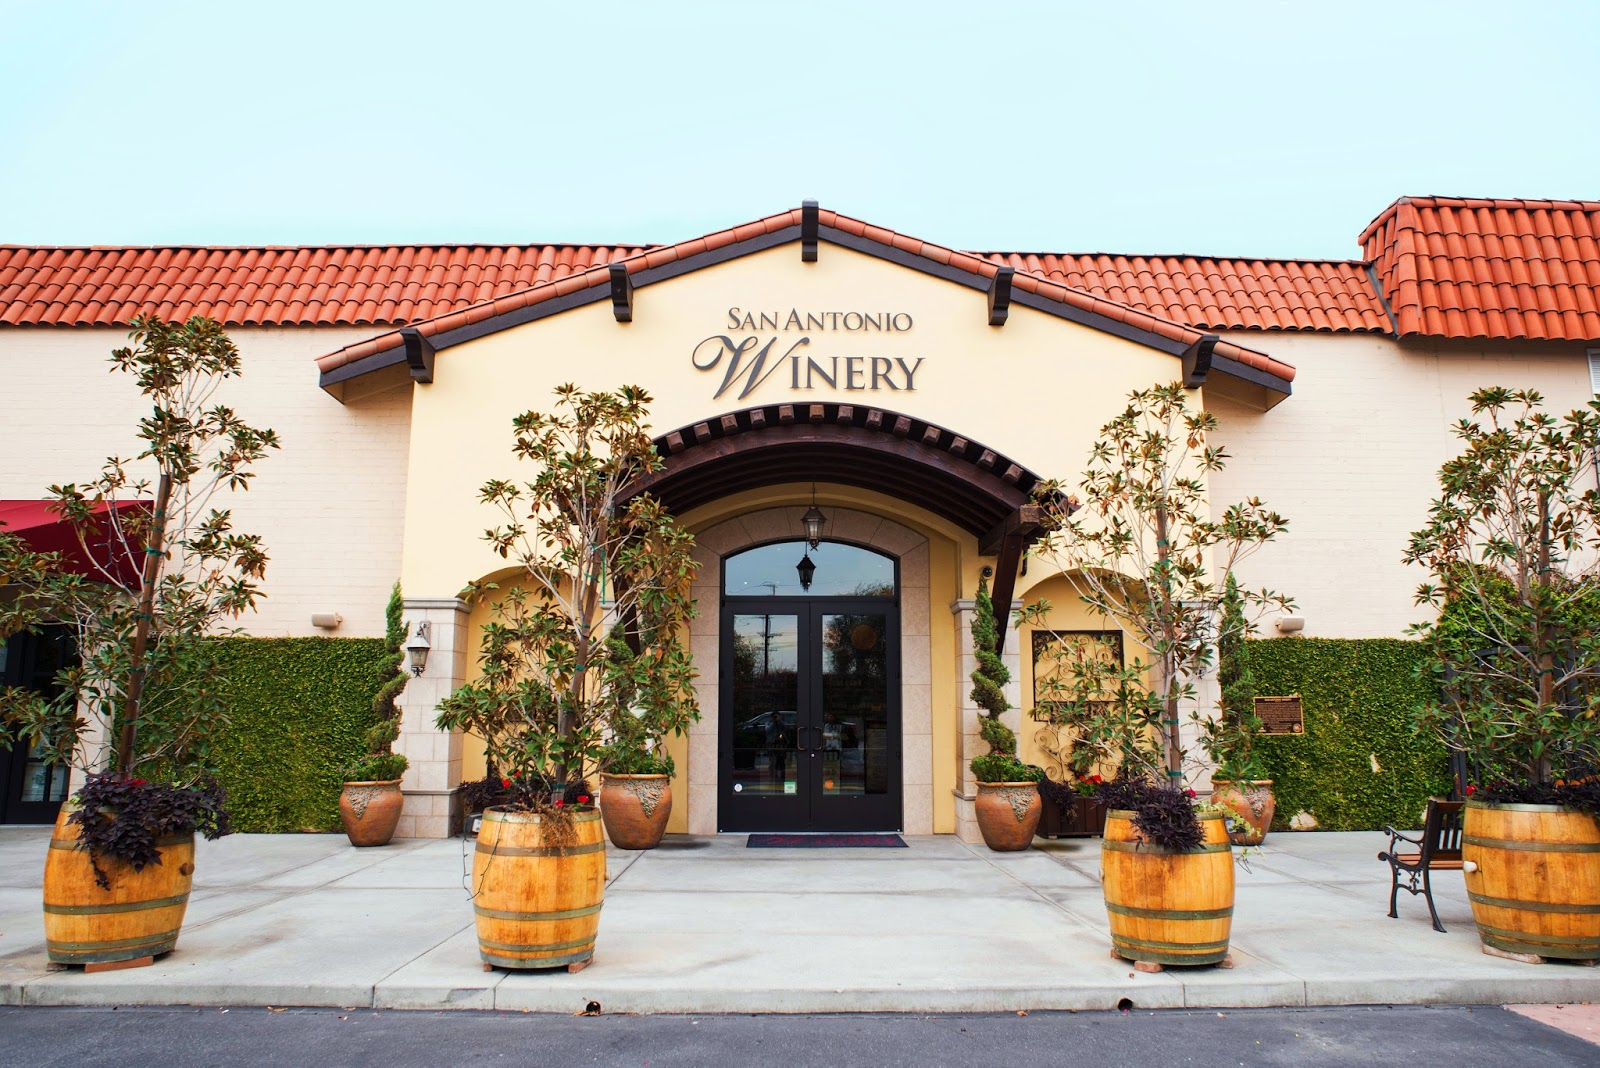 The Riboli Family was so impressed by the Zinfandel, Syrah, Cabernet Sauvignon, Grenache, Petite Verdot, and Petite Sirah grapes from their estate vineyard.